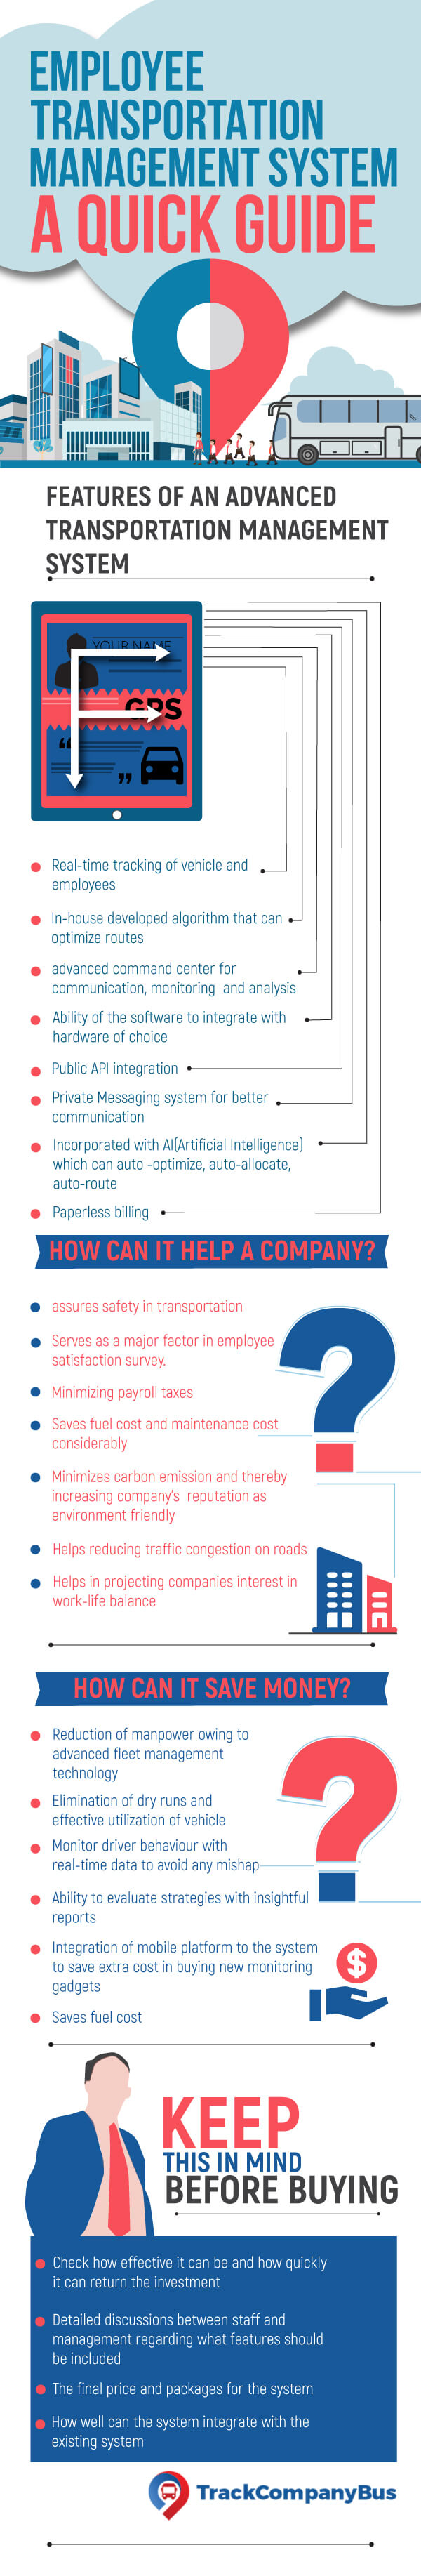 Employee-Transportation-Management-System-a-quick-Guide-infographic-plaza